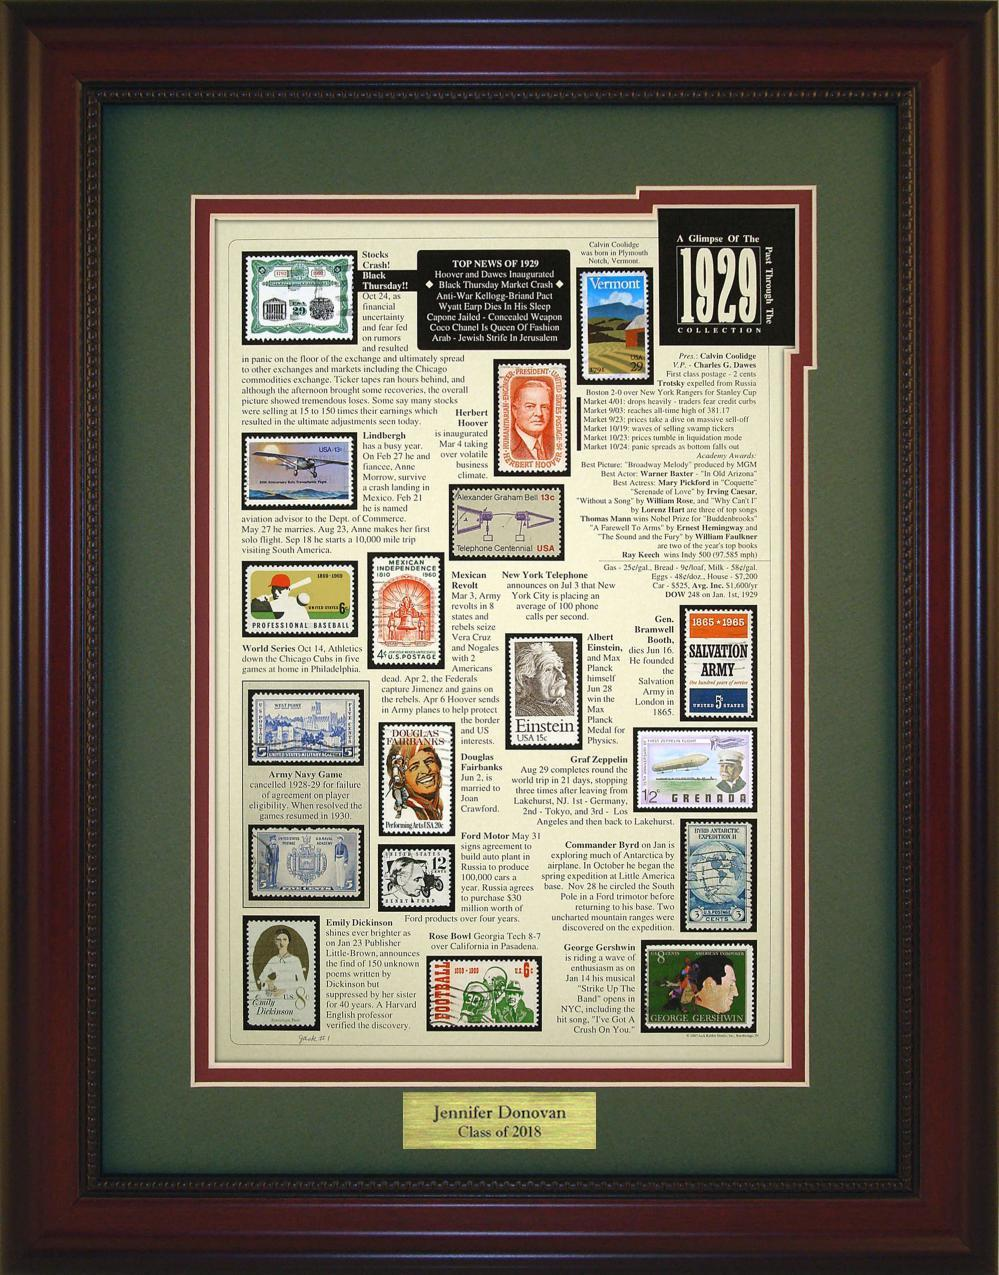 Year 1929 - Personalized Unique Framed Gift